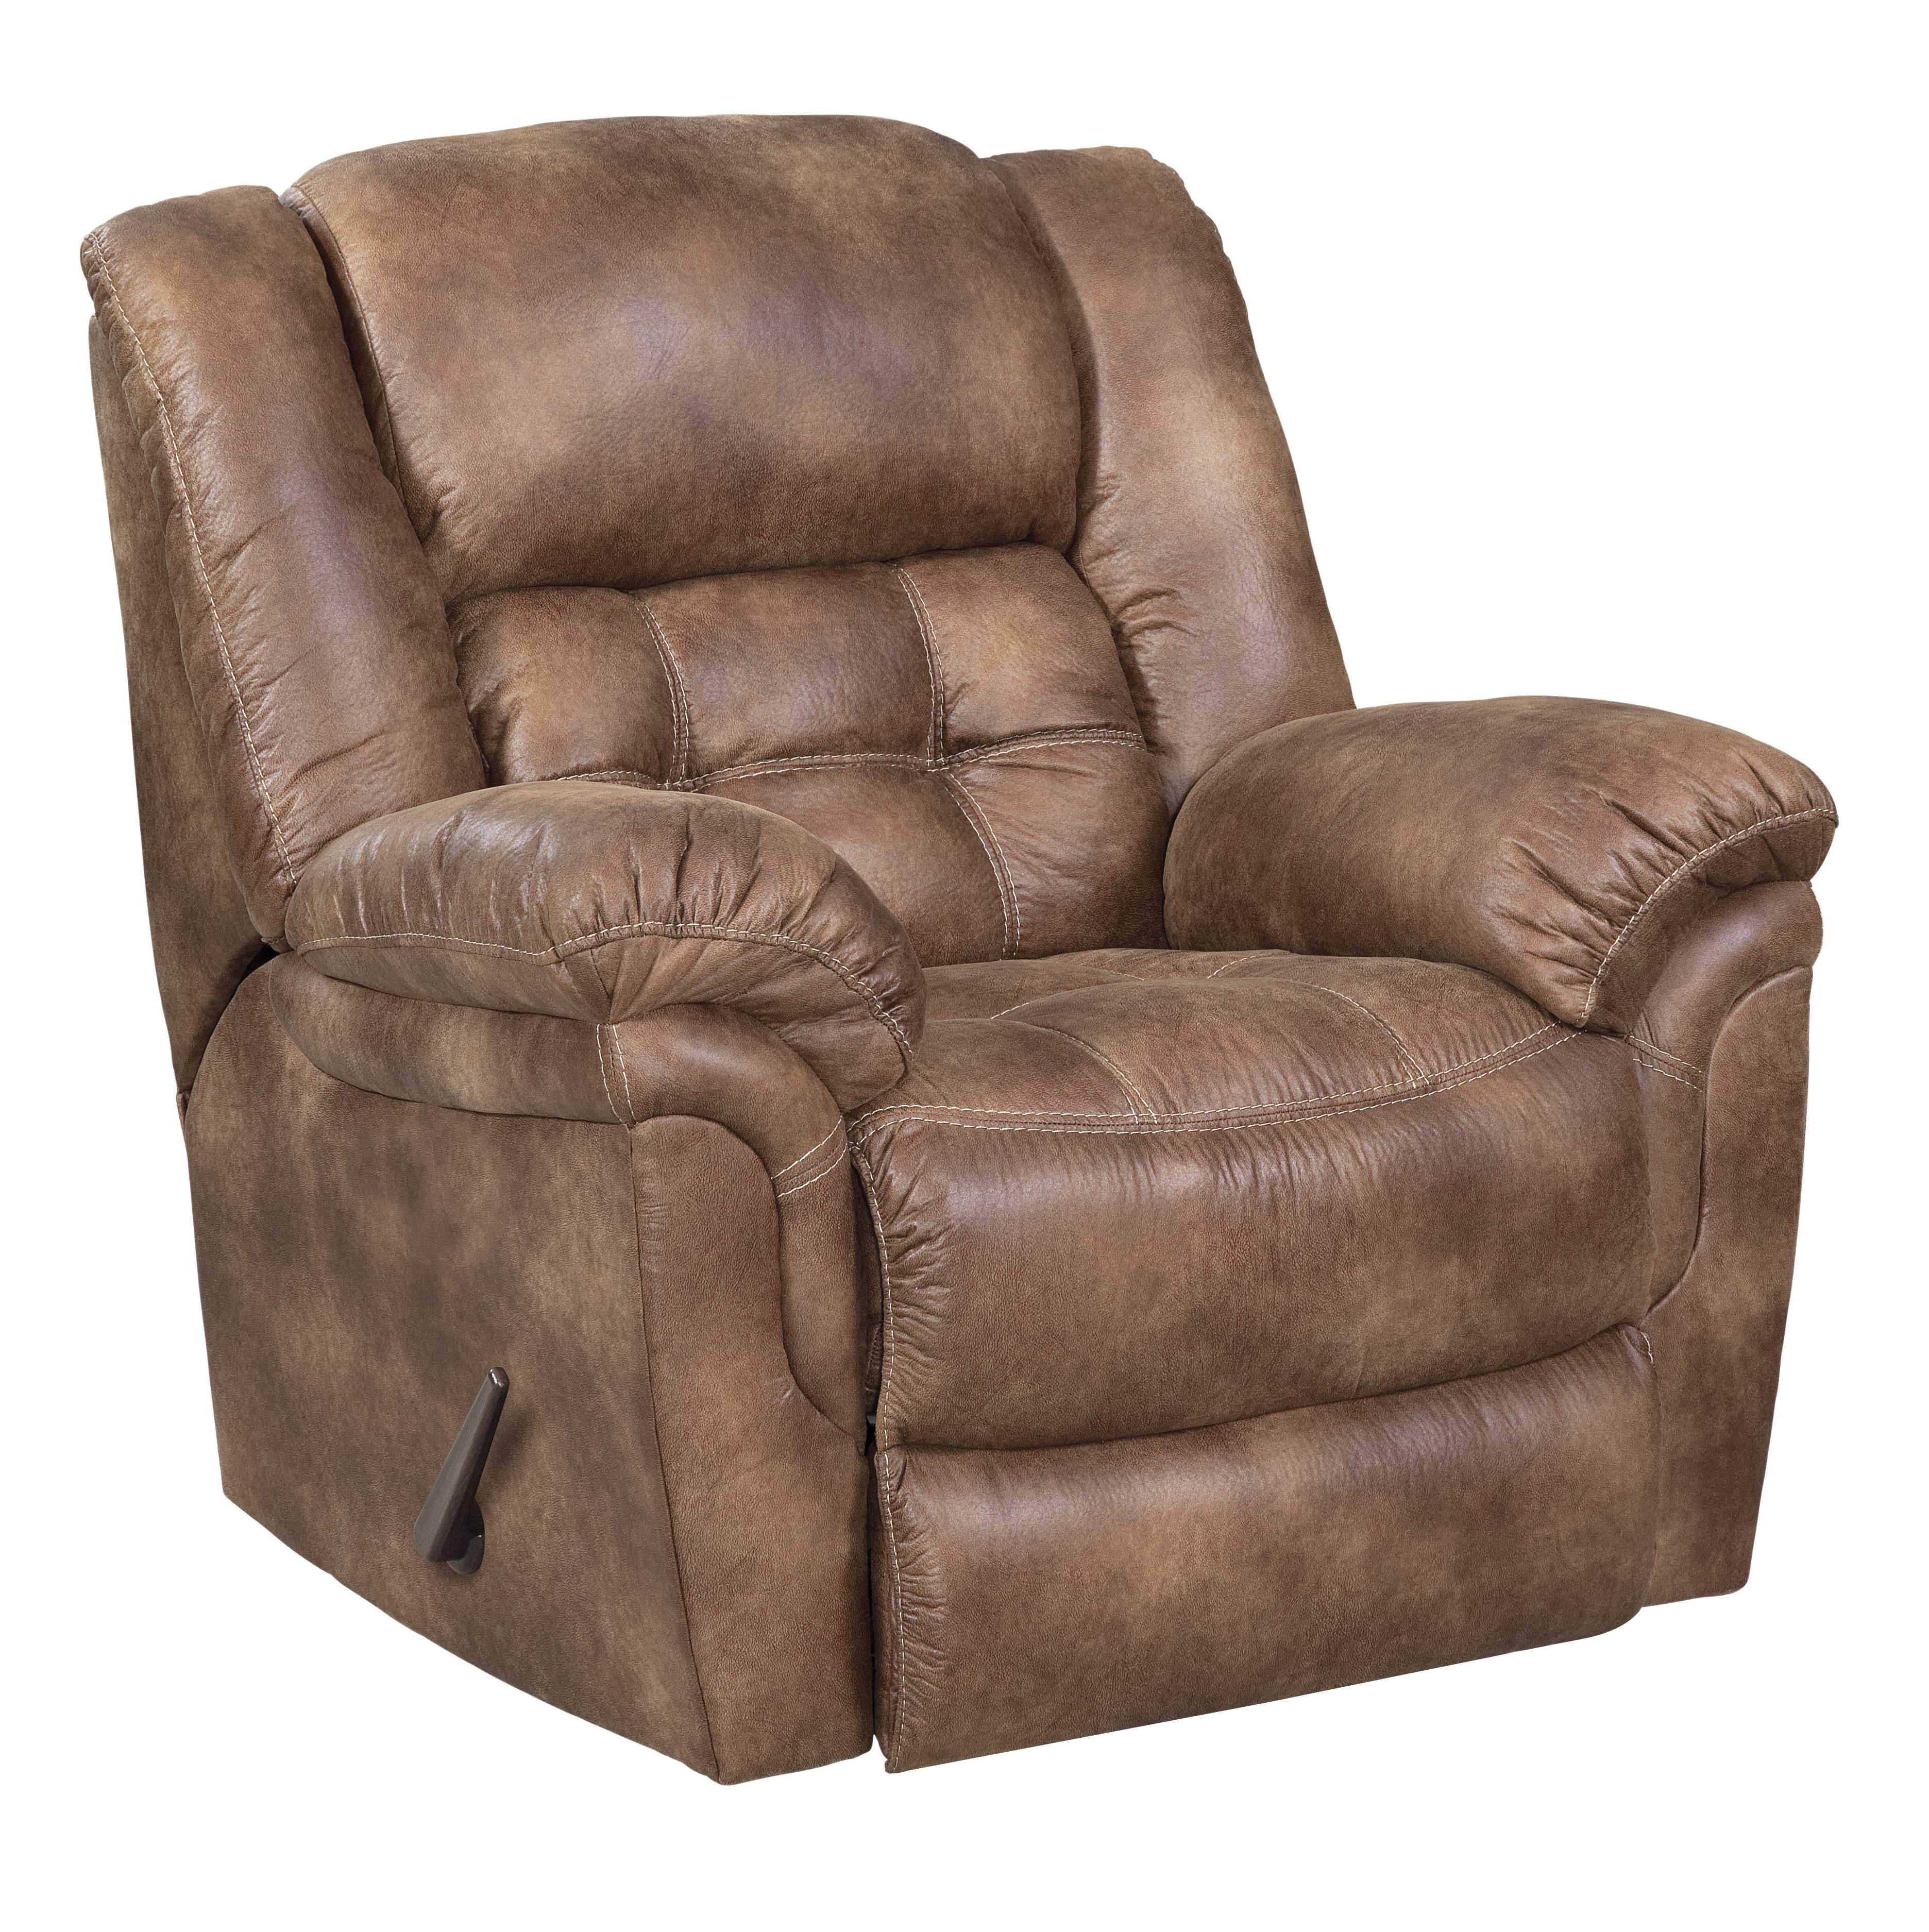 HomeStretch 129 Rocker Recliner  - Item Number: 129-91-15